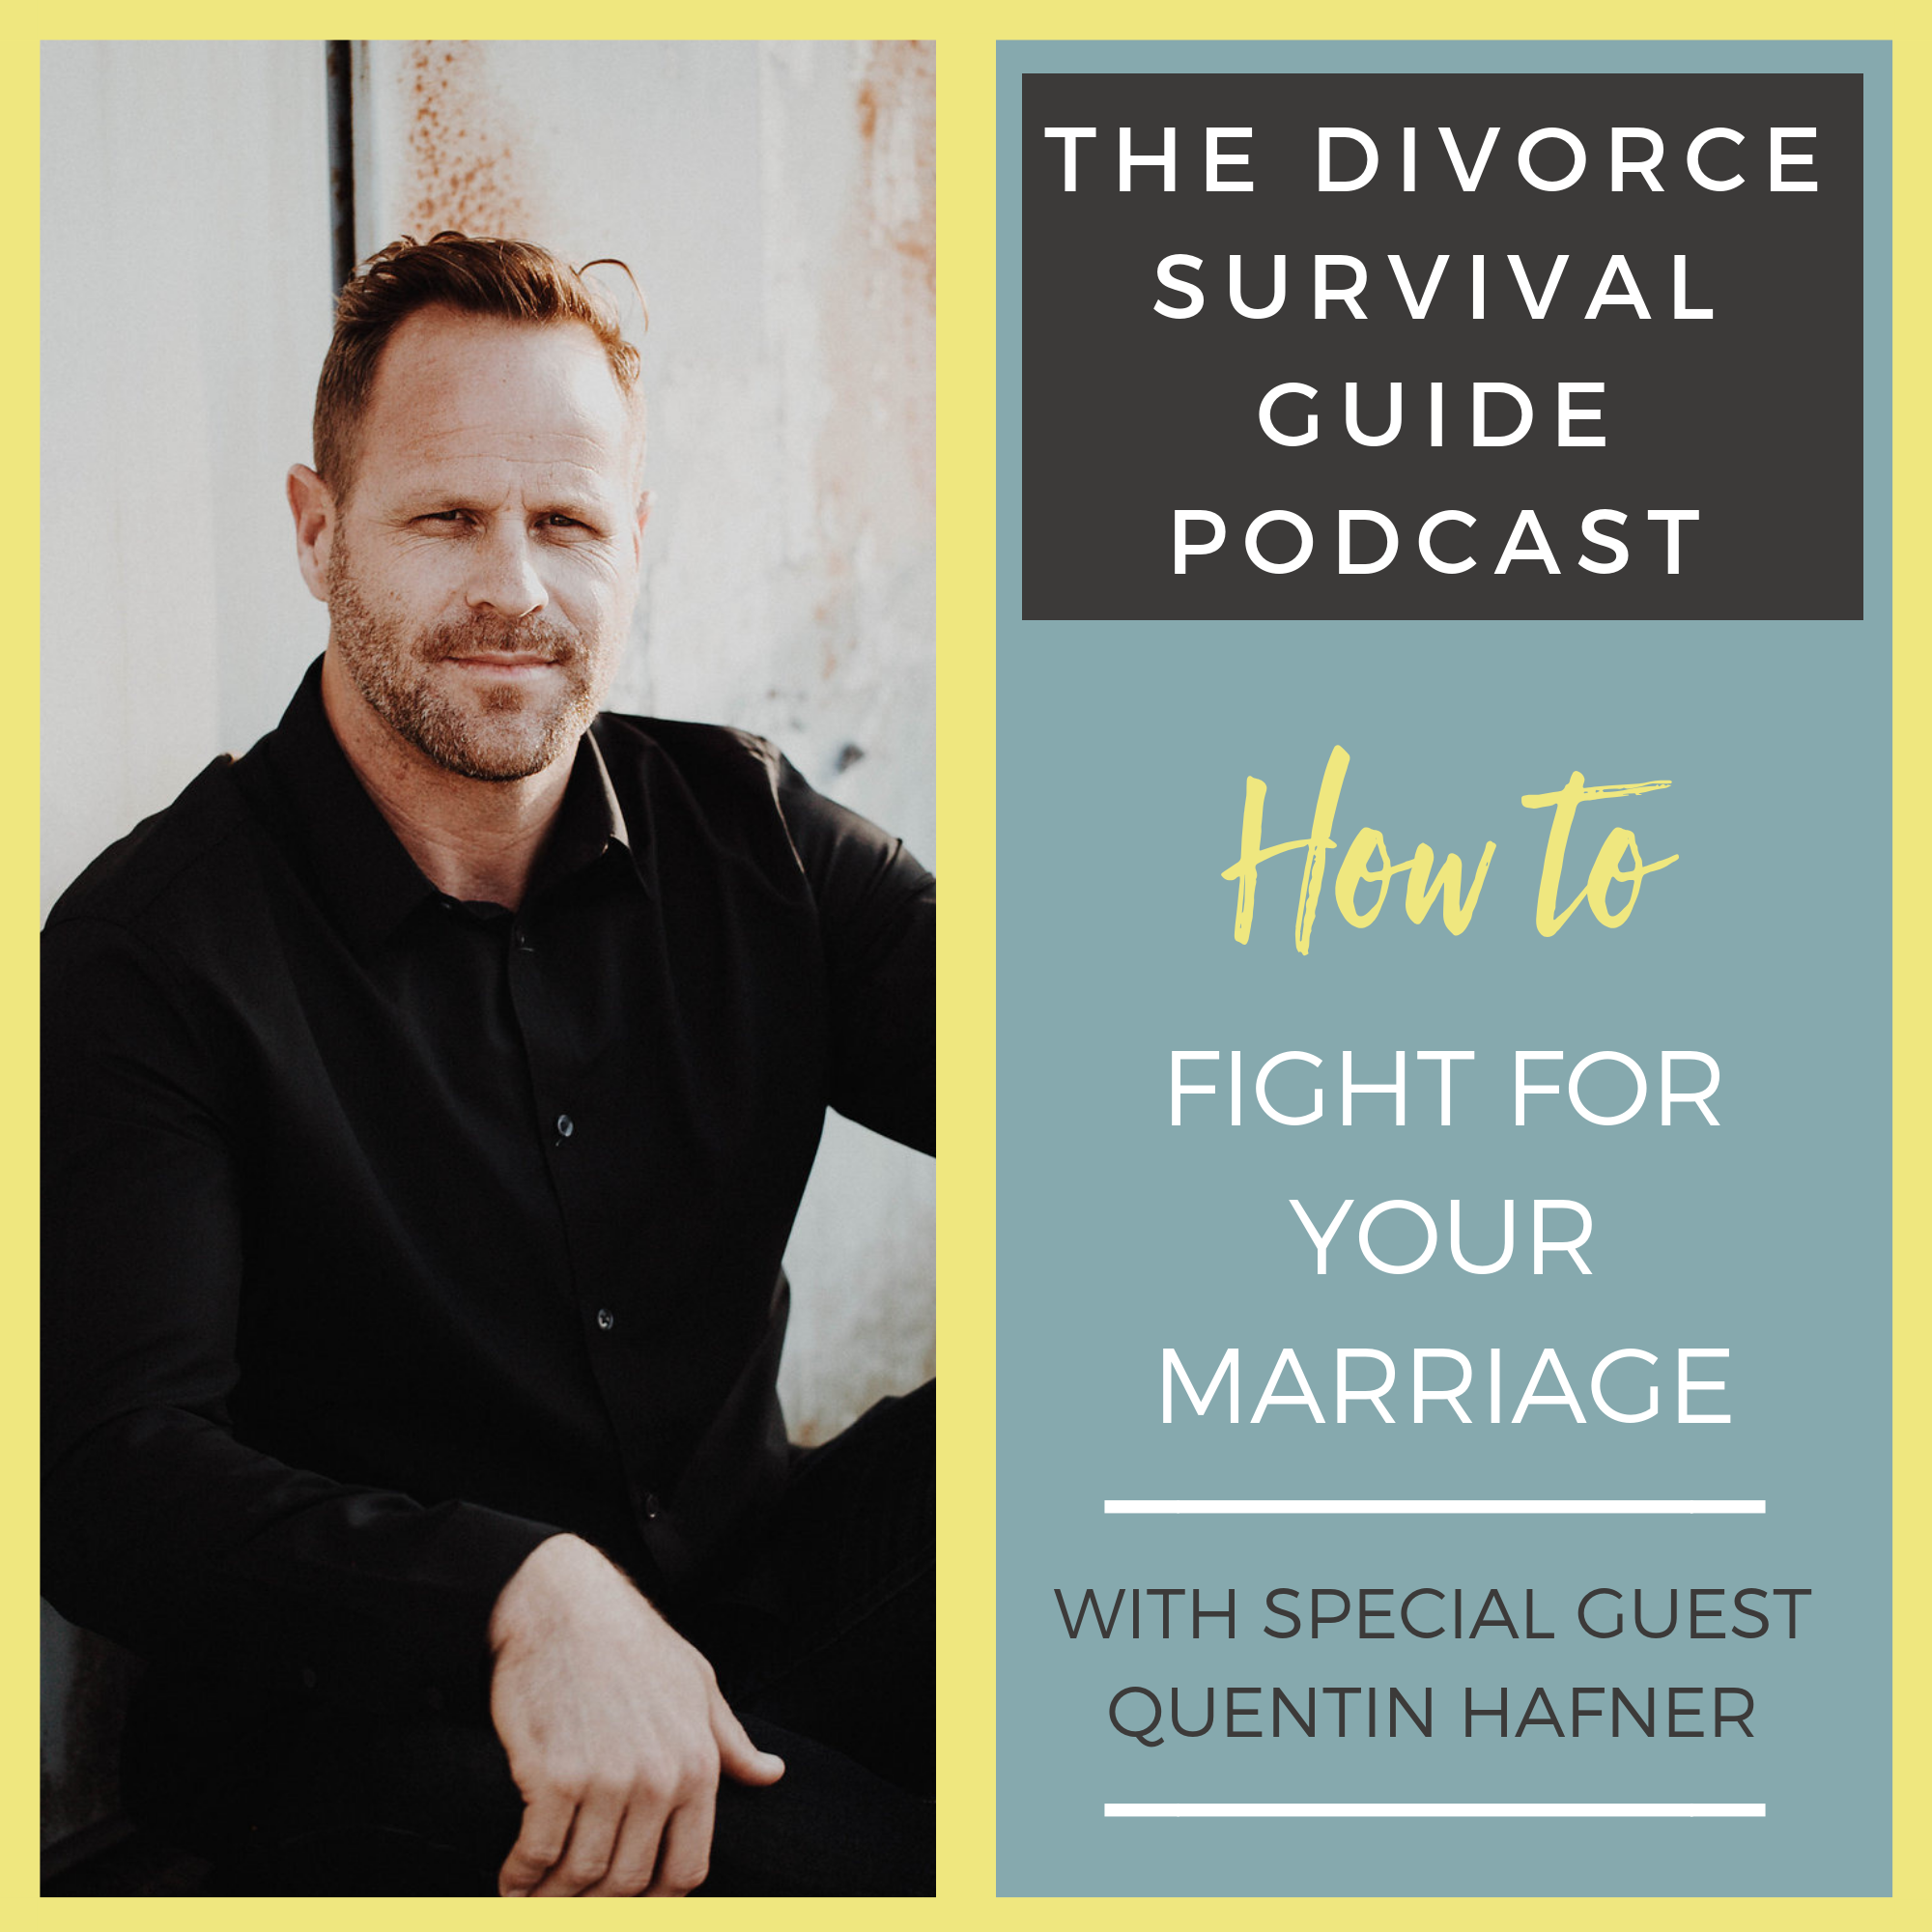 The Divorce Survival Guide Podcast - How To Fight For Your Marriage with Quentin Hafner